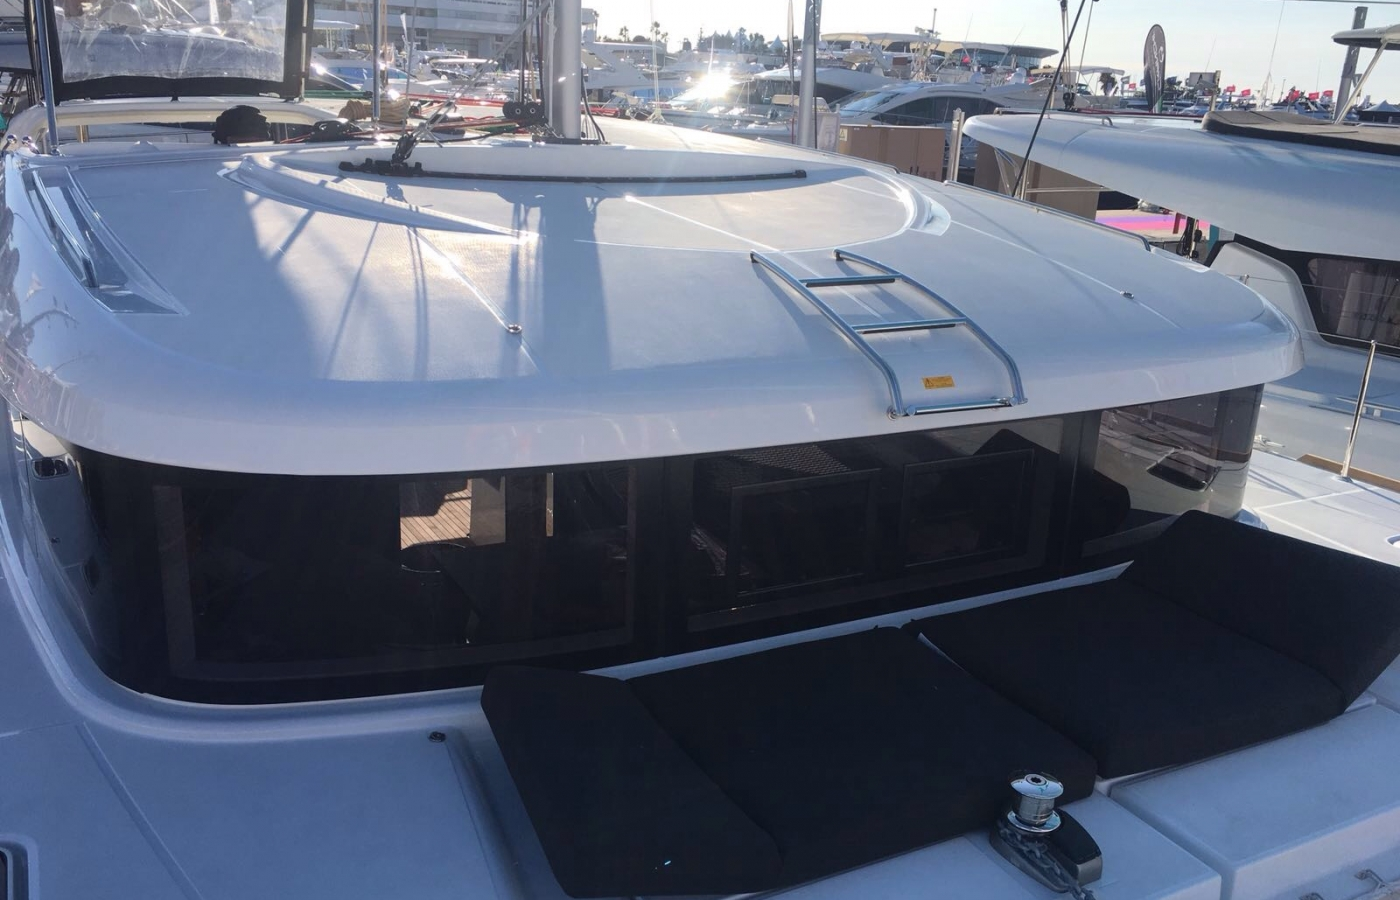 Lagoon 40 - Milù top deck with sunbathing area for guests